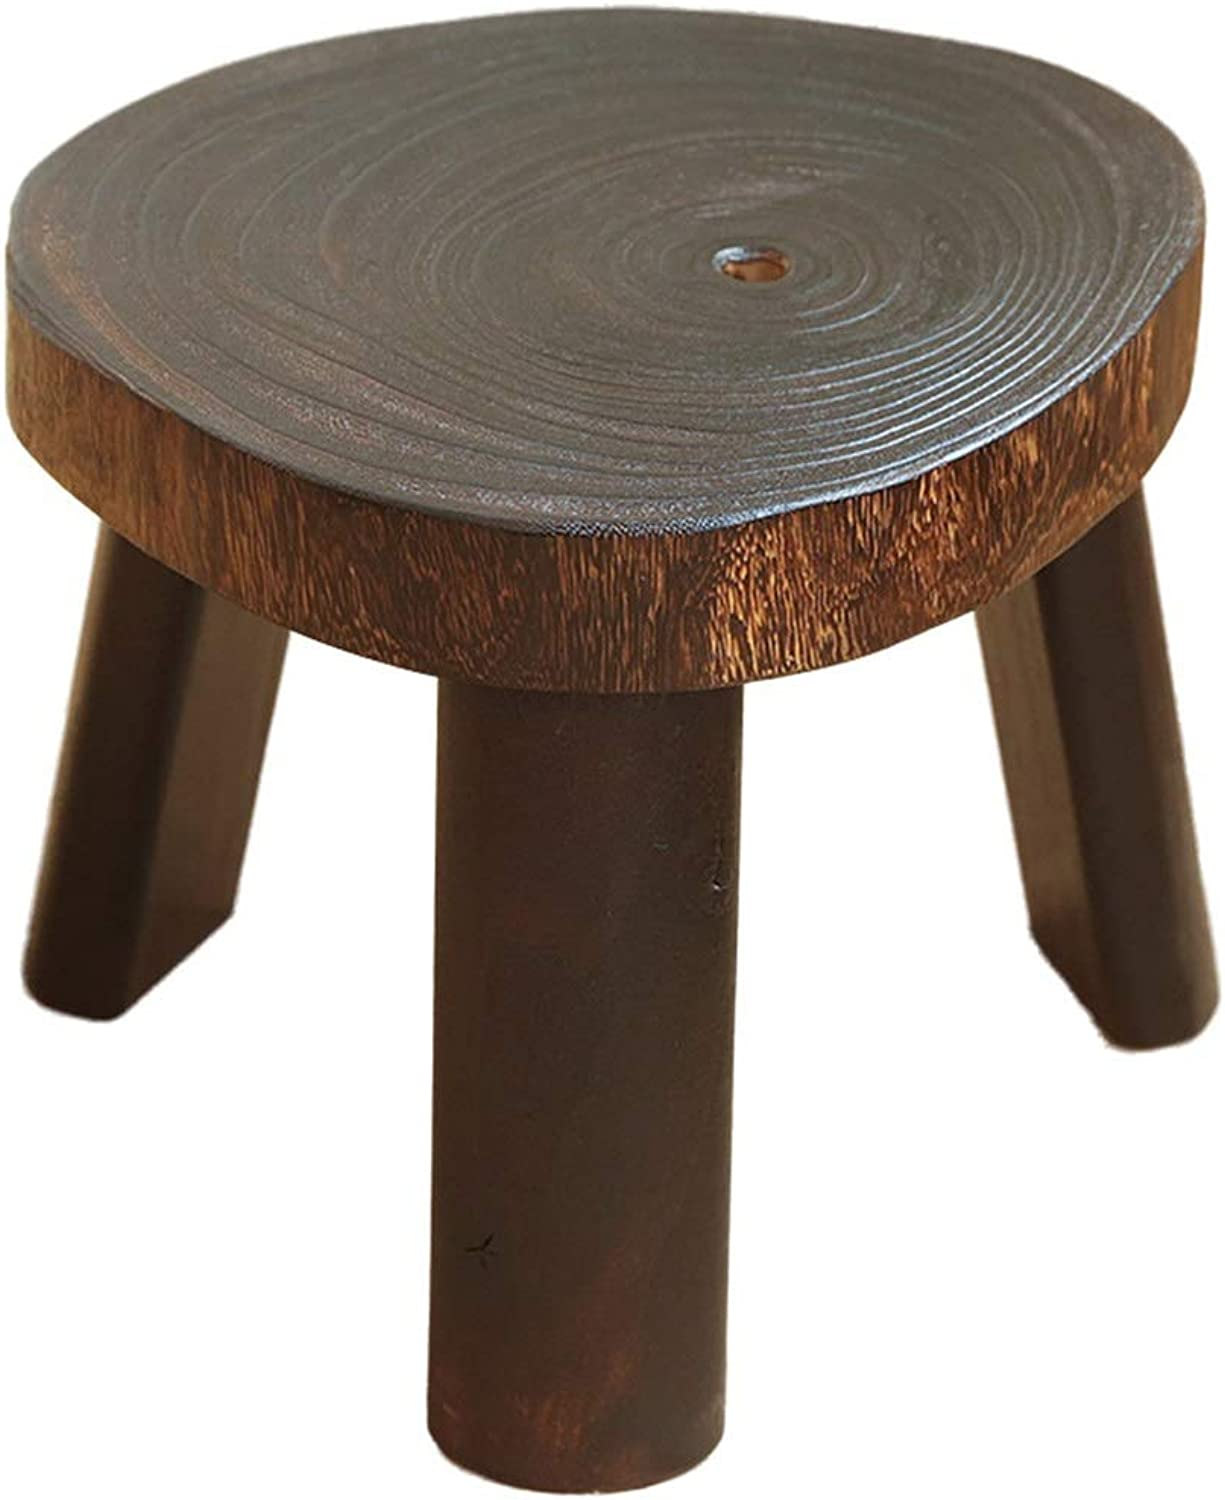 ZHAOYONGLI Stool Change shoes Bench Solid Wood Footstool Triangle Round Sofa Stool Home Multi-Function Stool Creative Solid Durable Long Lasting (color   Brown, Size   20-25  27.5cm)